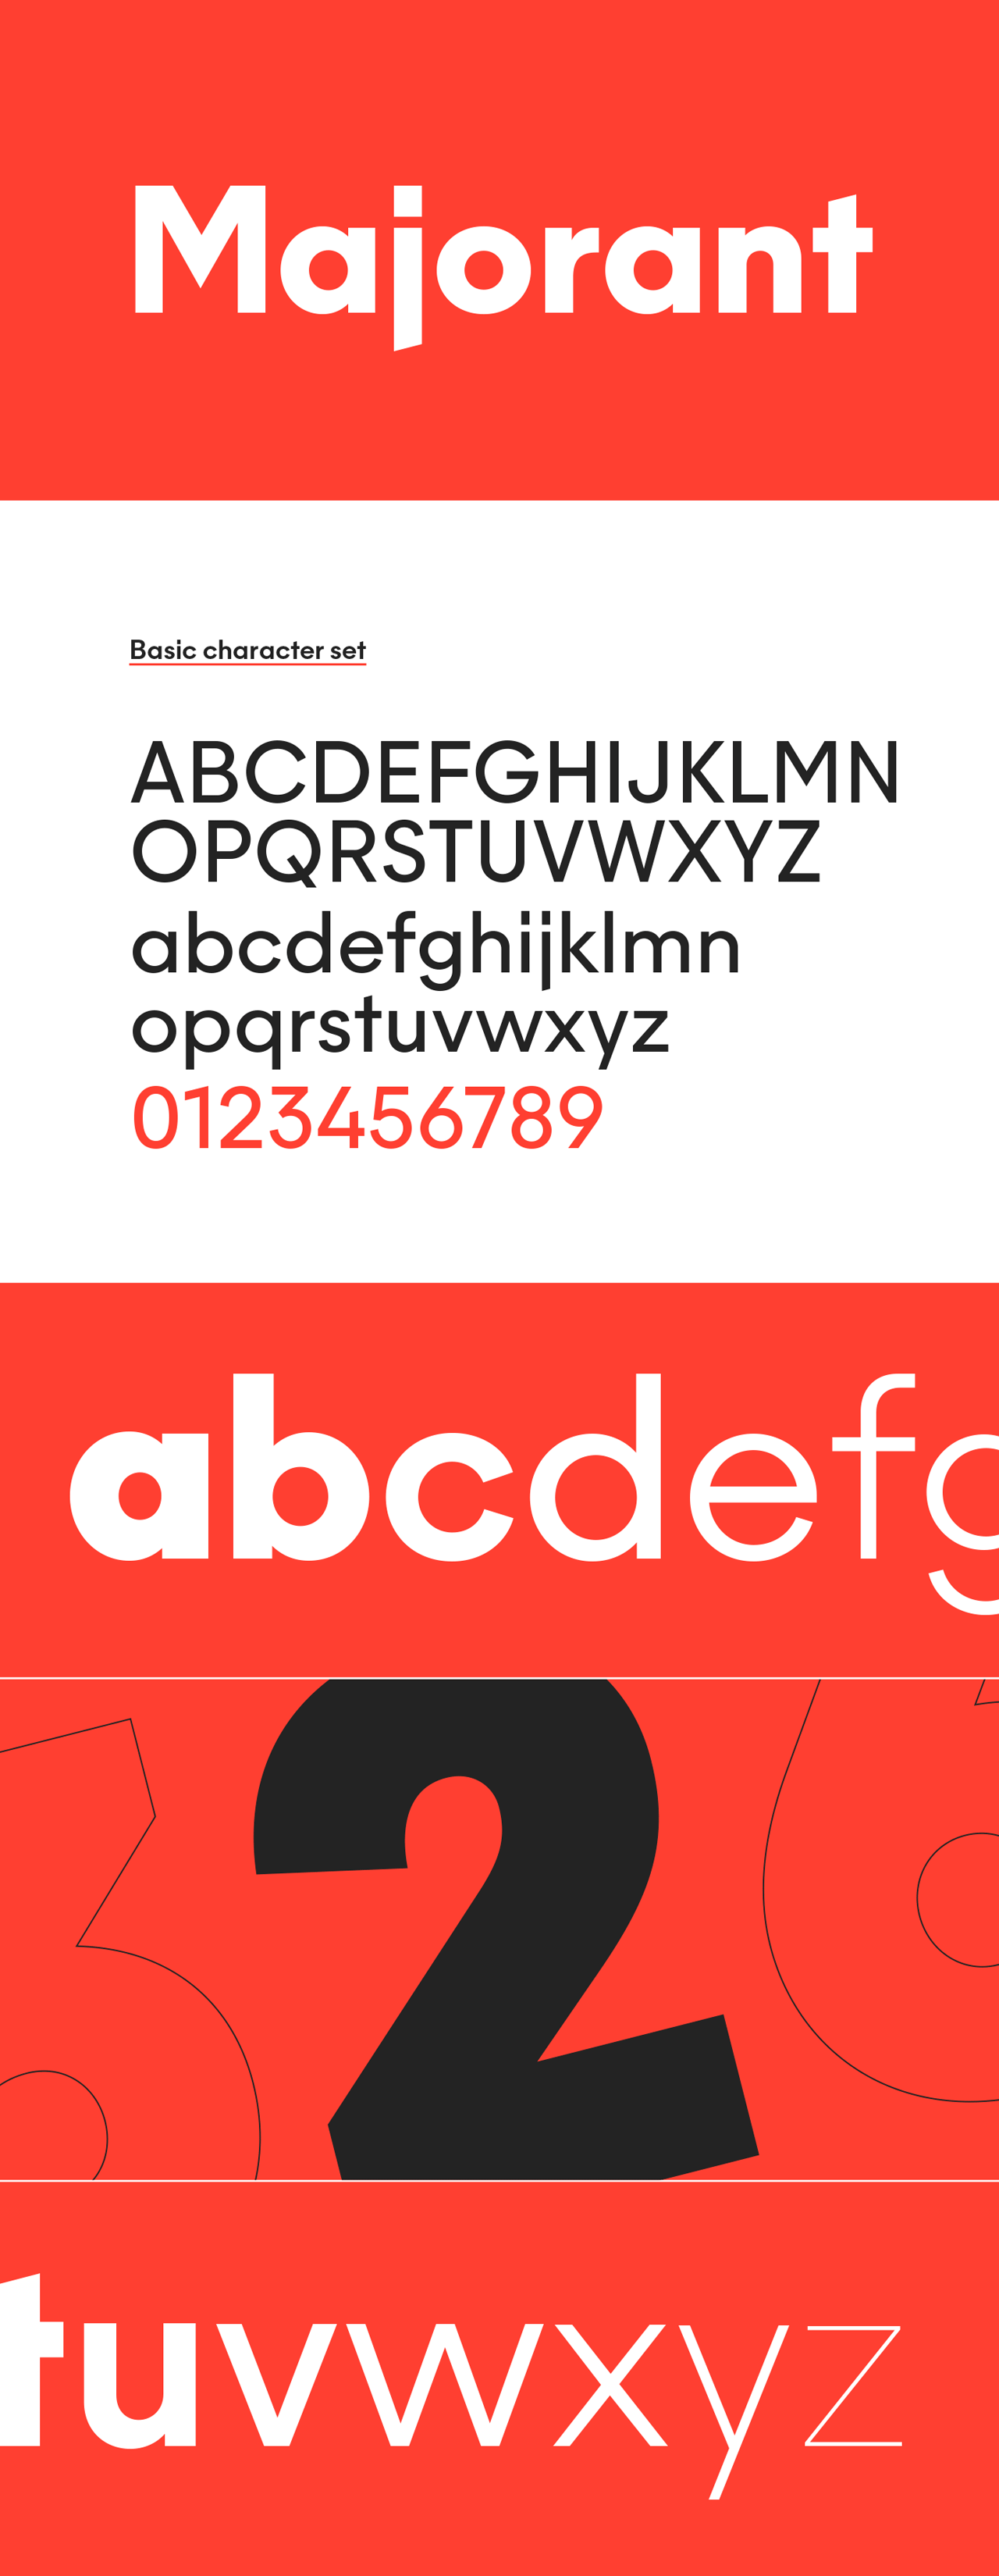 Majorant Font Family by Emtype Foundry